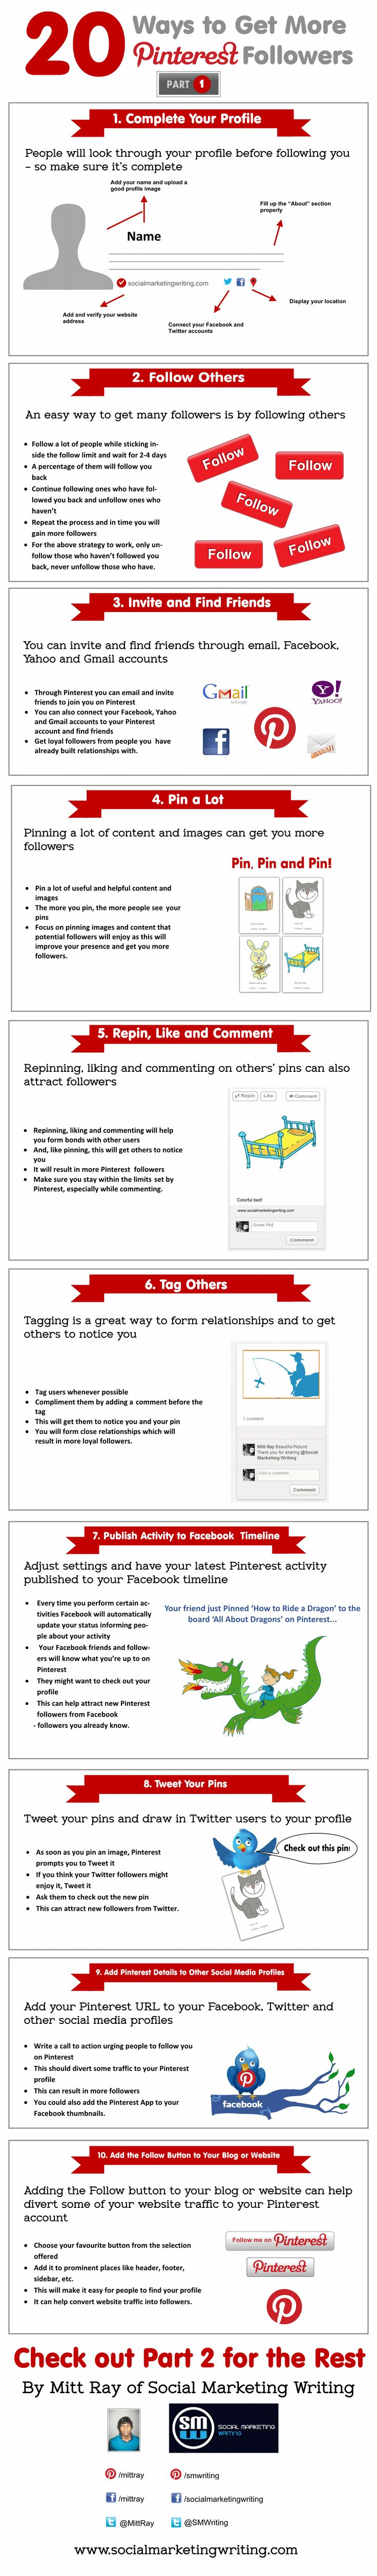 20 Ways to Get More Pinterest Followers Infographic Part 1  http://socialmediabar.com/share-me-n0w